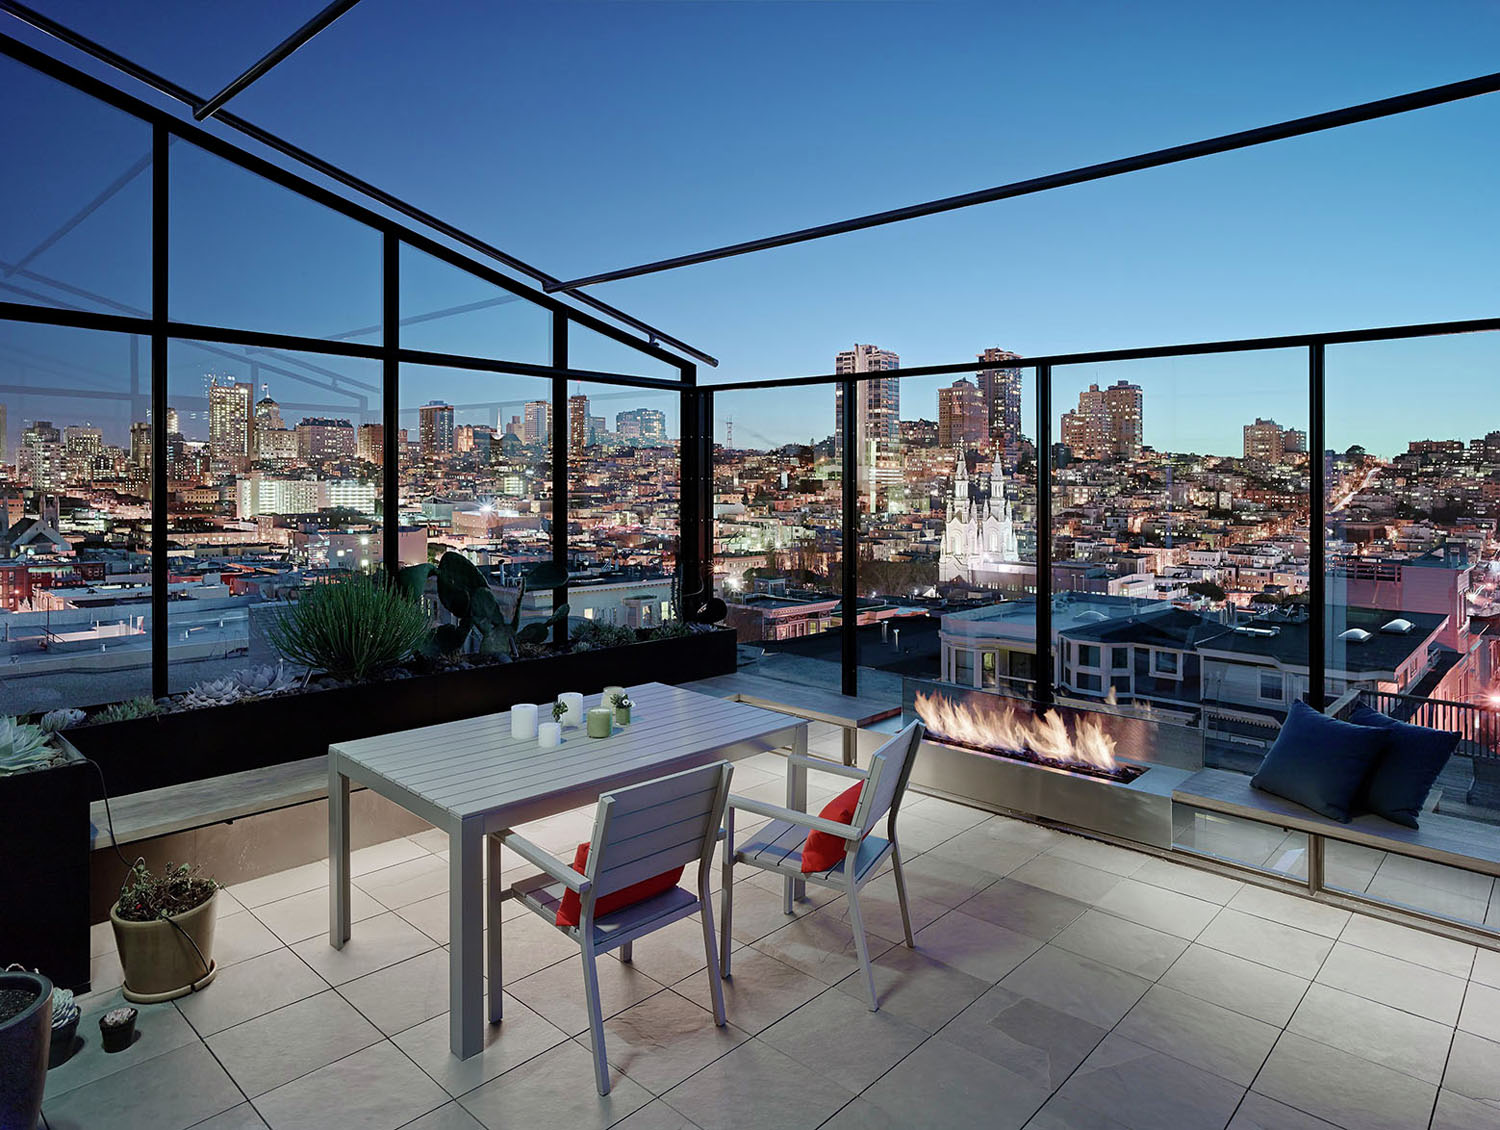 Multi Level Remodeled Home In San Francisco With Abundance